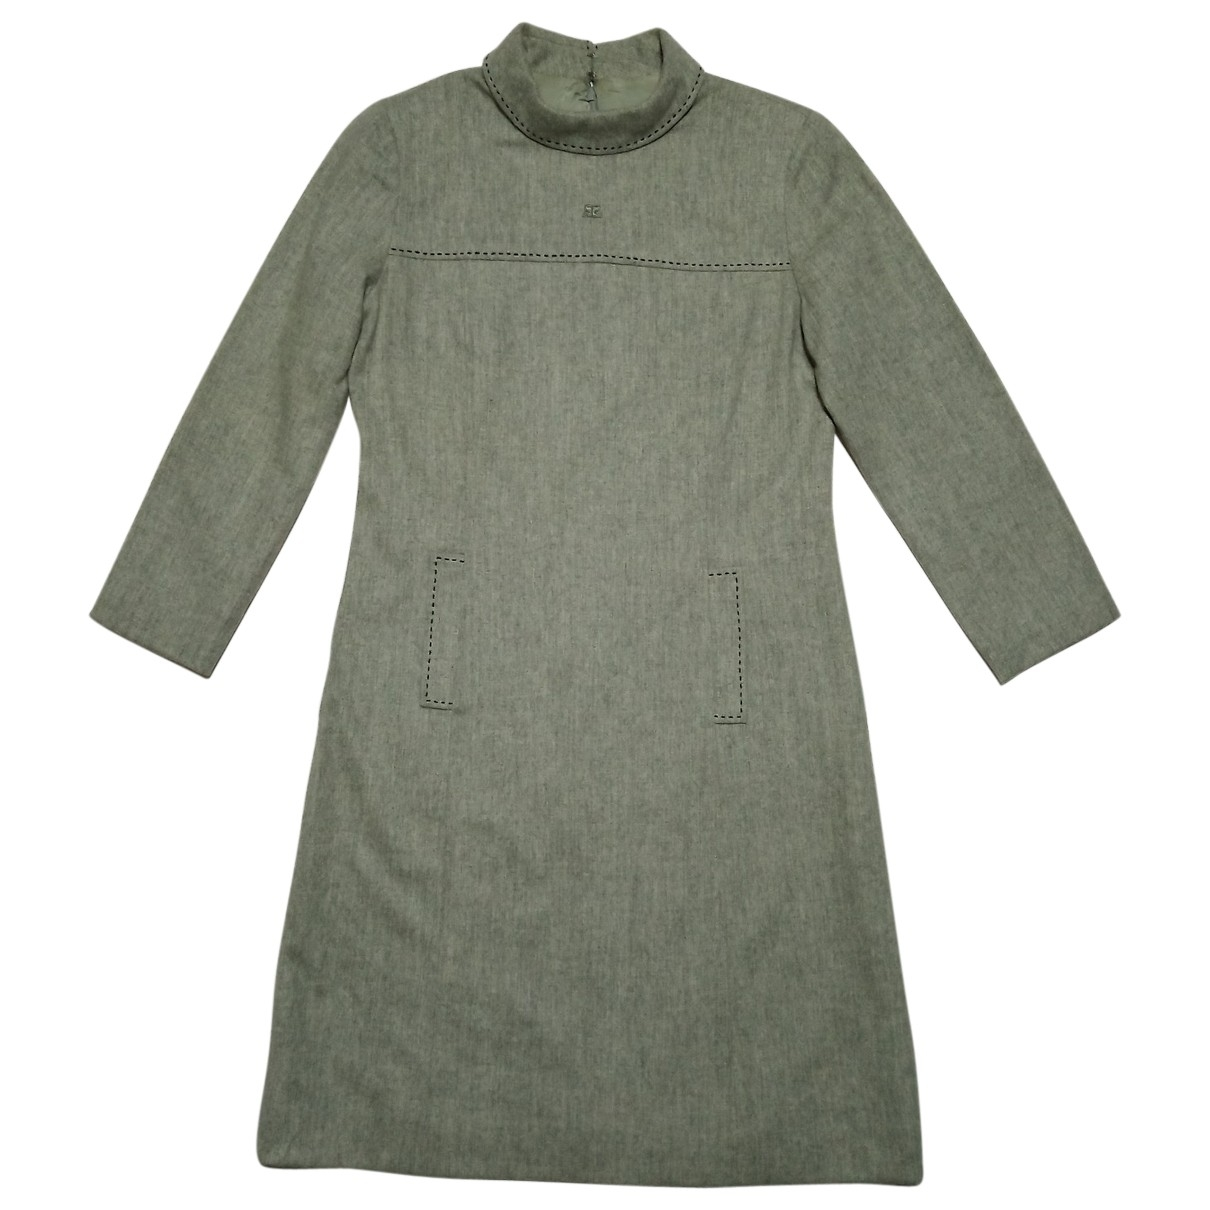 Courreges \N Kleid in  Khaki Wolle